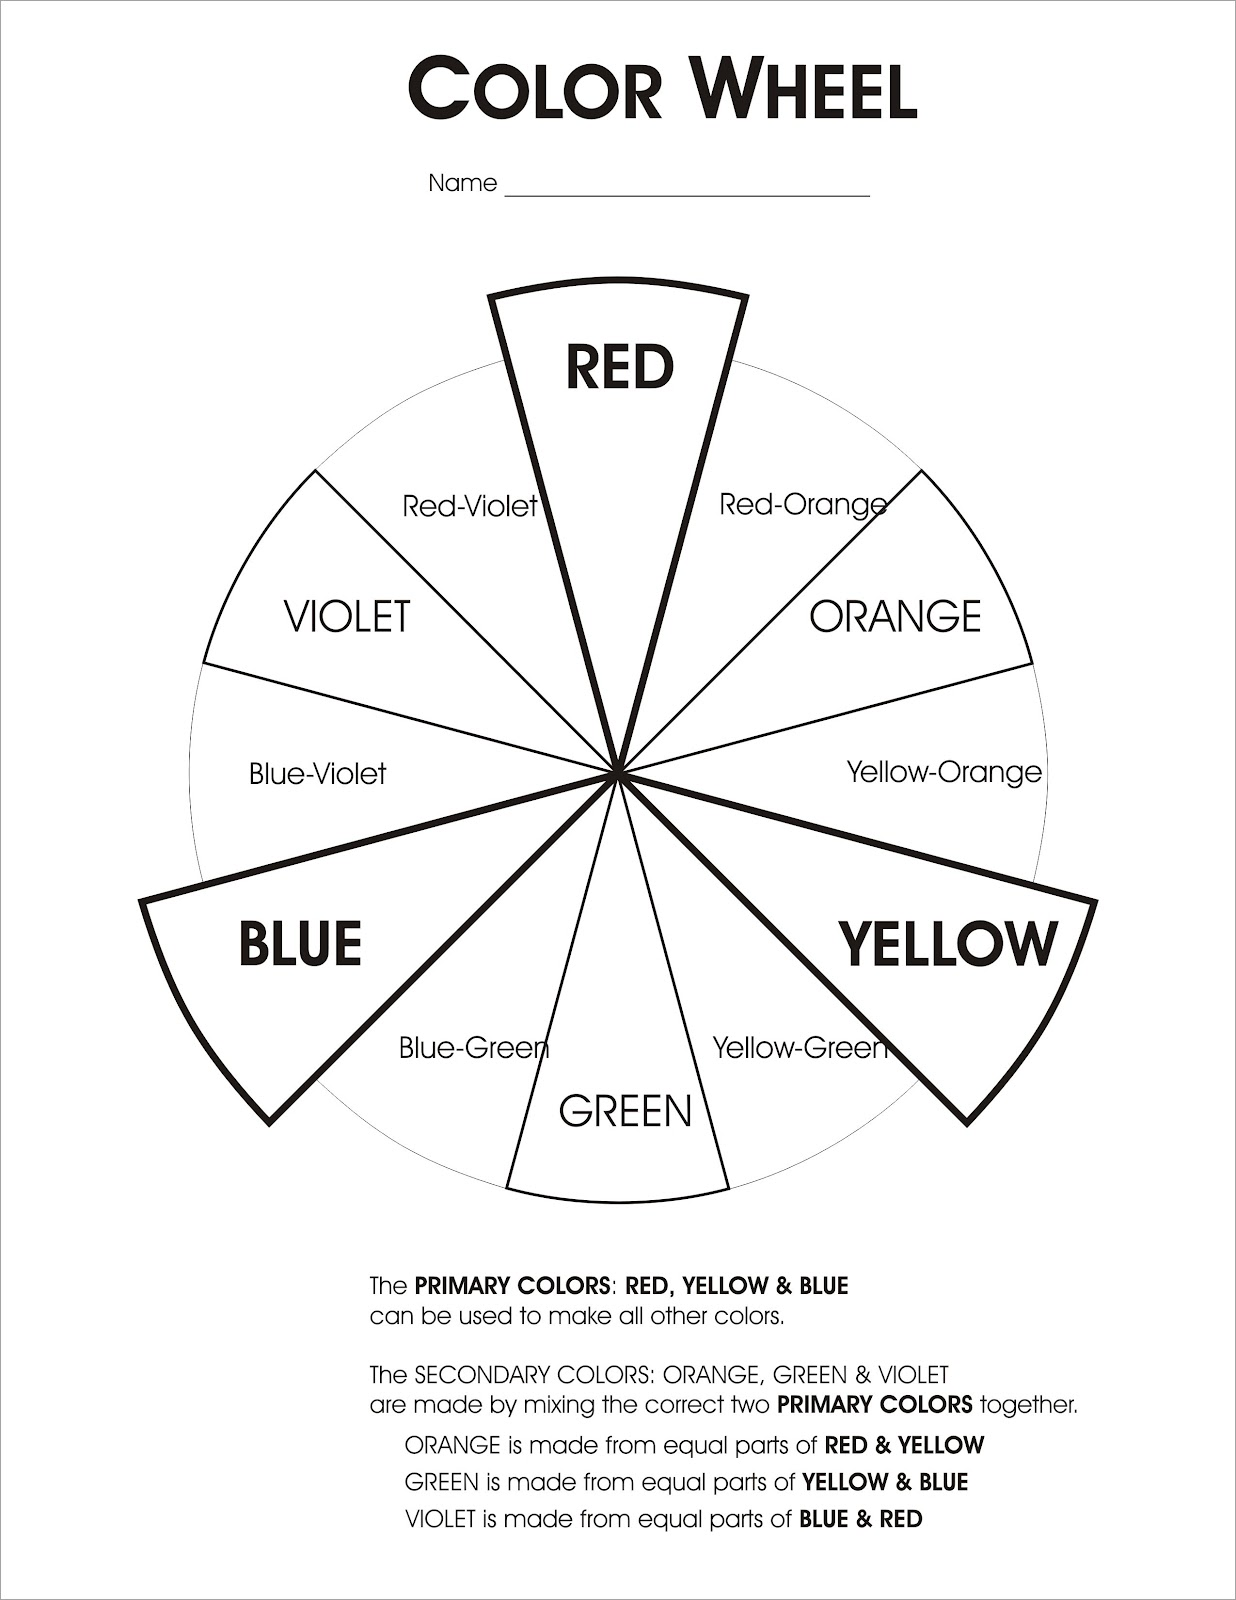 Colorwheel Worksheet